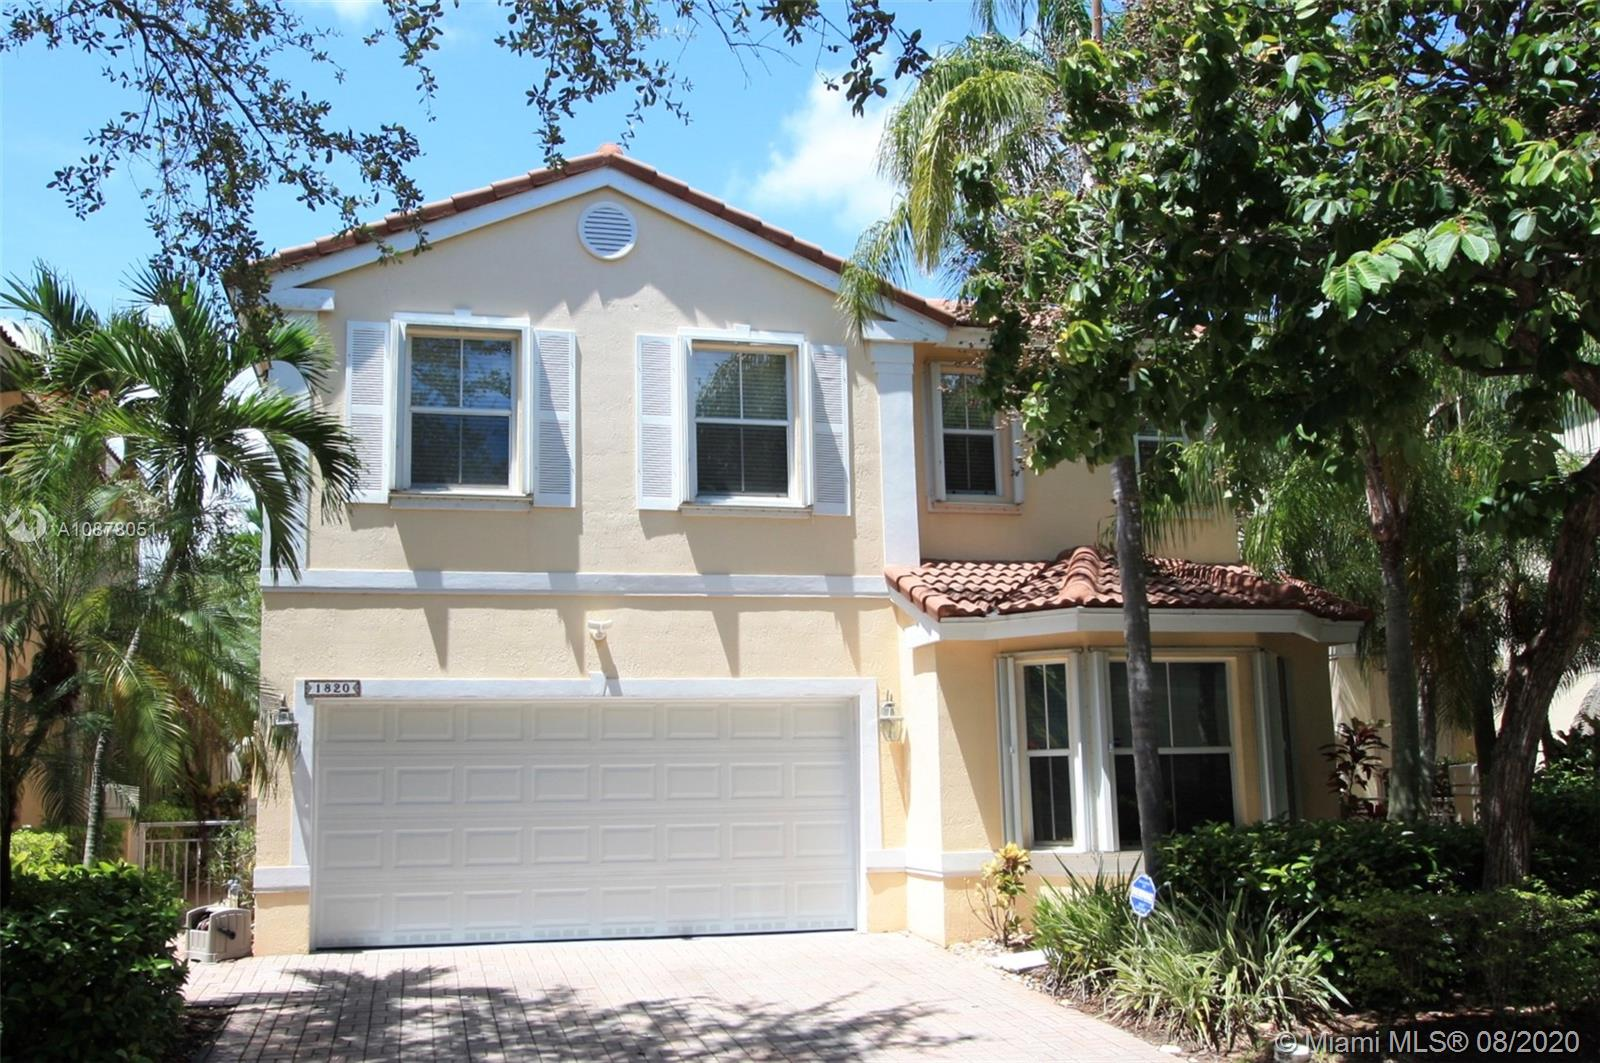 Details for 1820 Sweetbay Way, Hollywood, FL 33019